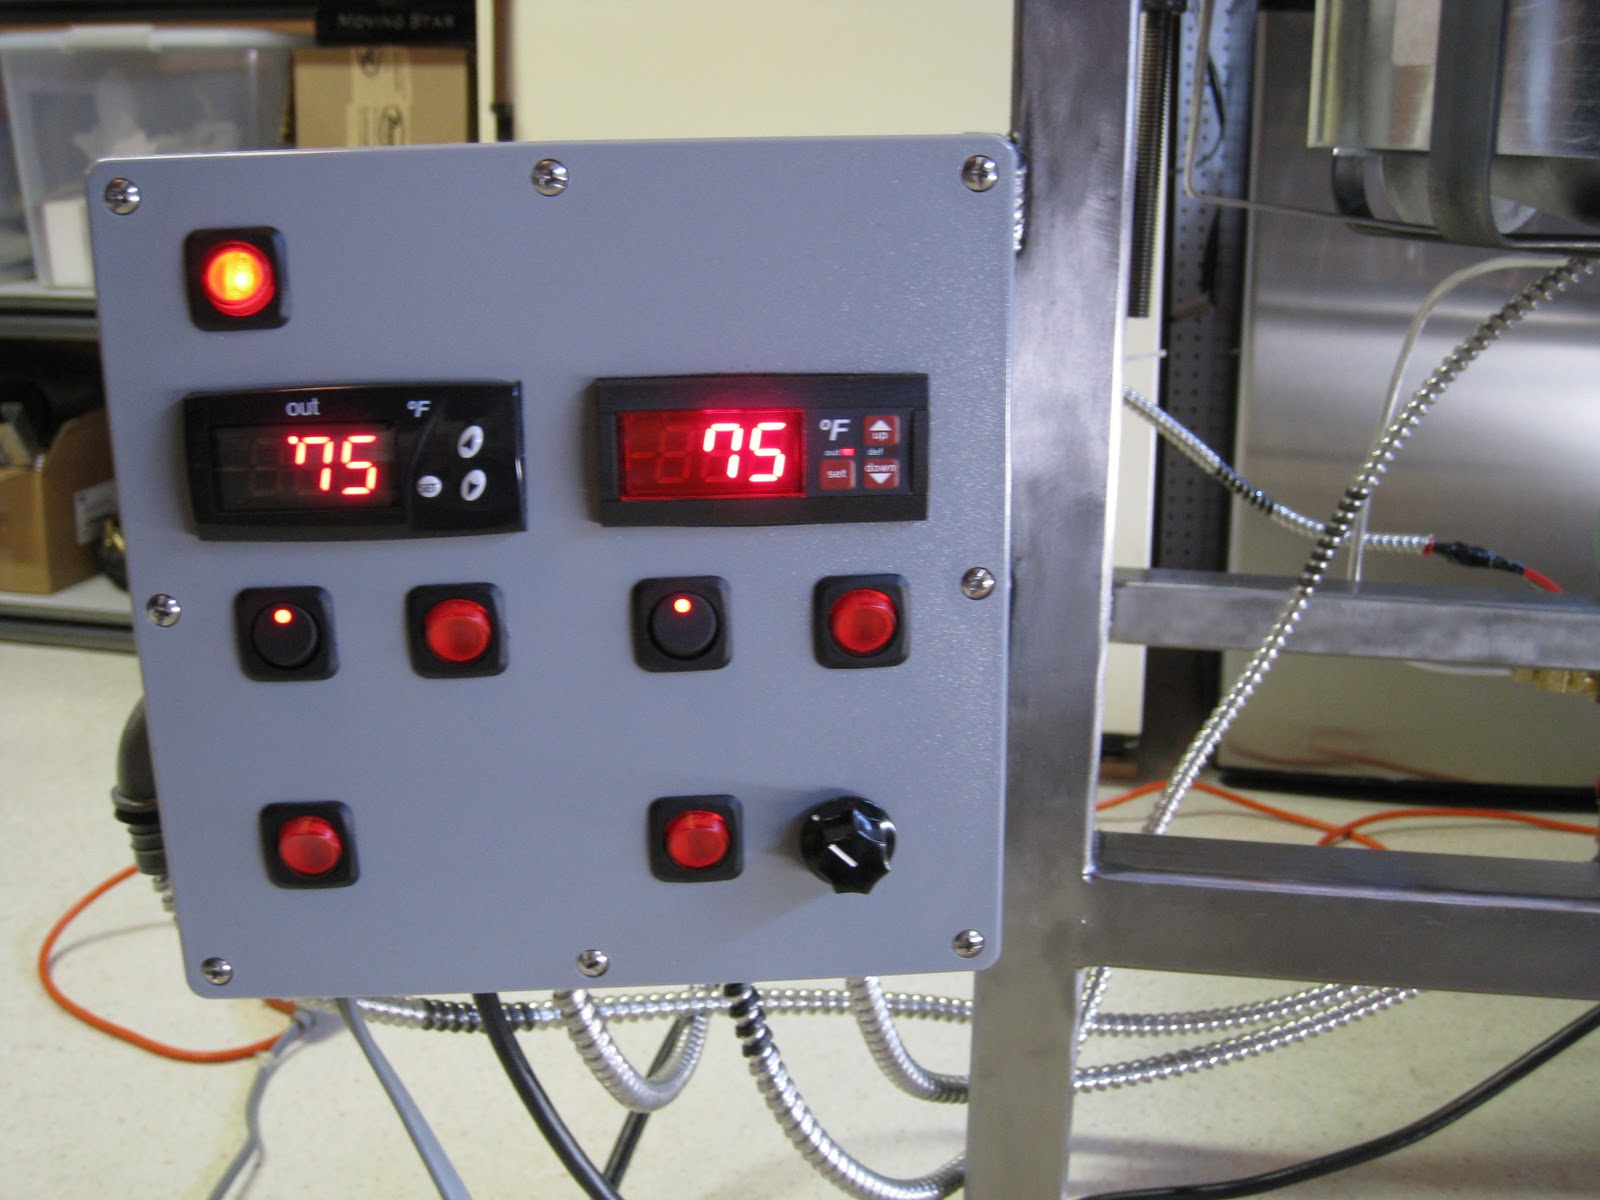 Black Alley Brewing: The Control Panel and Sensors #B11A2A